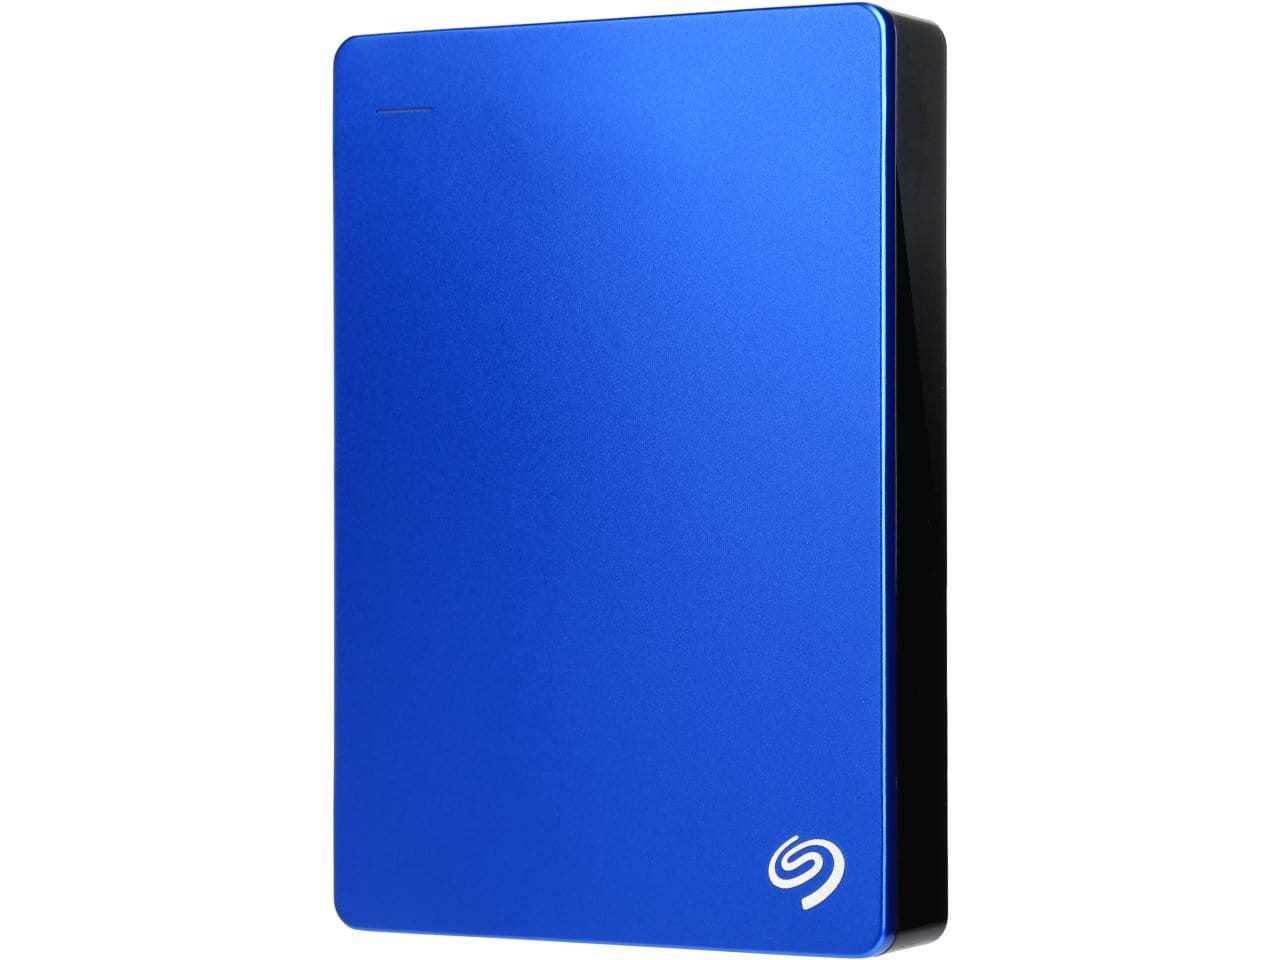 "4 TB Seagate Backup Plus Portable USB 3.0 External Hard Drive for $109.99 AC, 2 TB Seagate Desktop HDD 3.5"" 7200 RPM SATA III Internal Hard Drive for $59.99 AC & More @ Newegg.com"